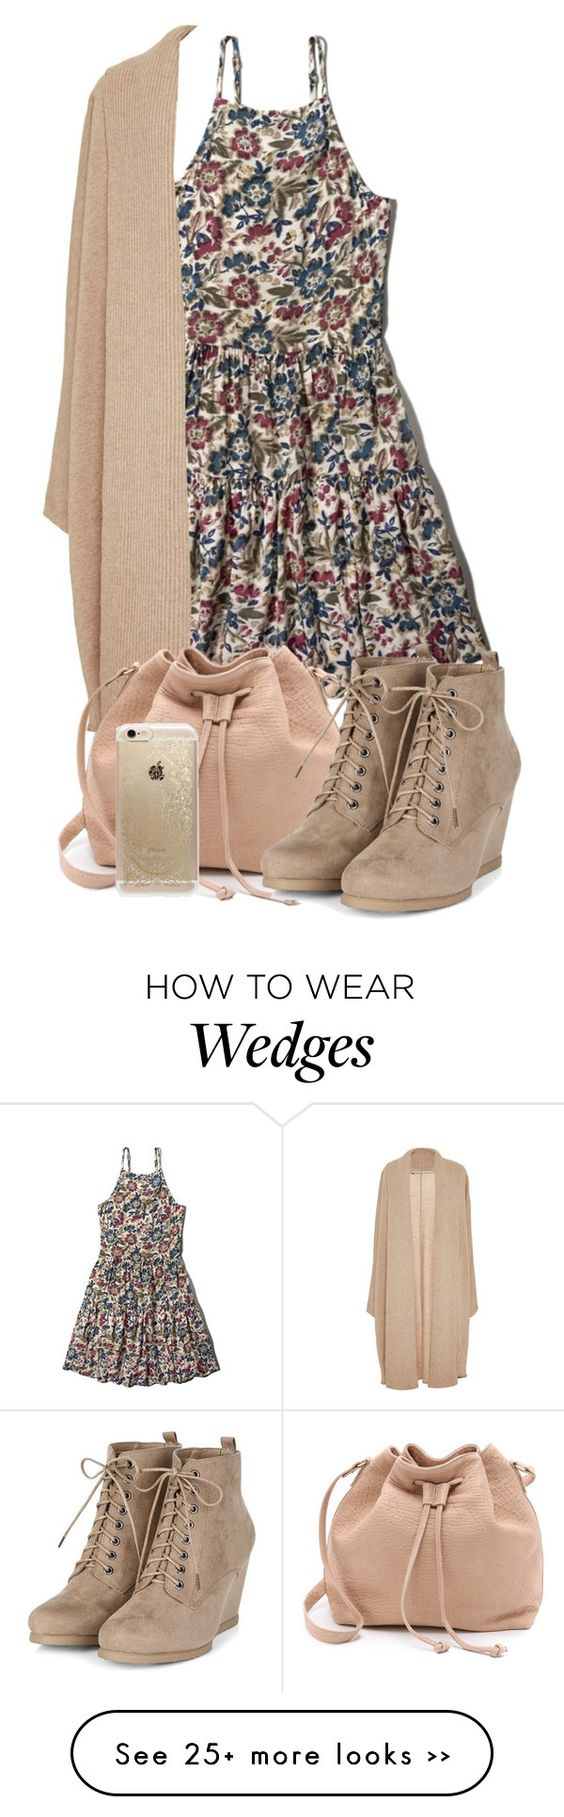 """walk in the park"" by blackfashion123 on Polyvore featuring Abercrombie & Fitch, Rosetta Getty, MR. and Rifle Paper Co"